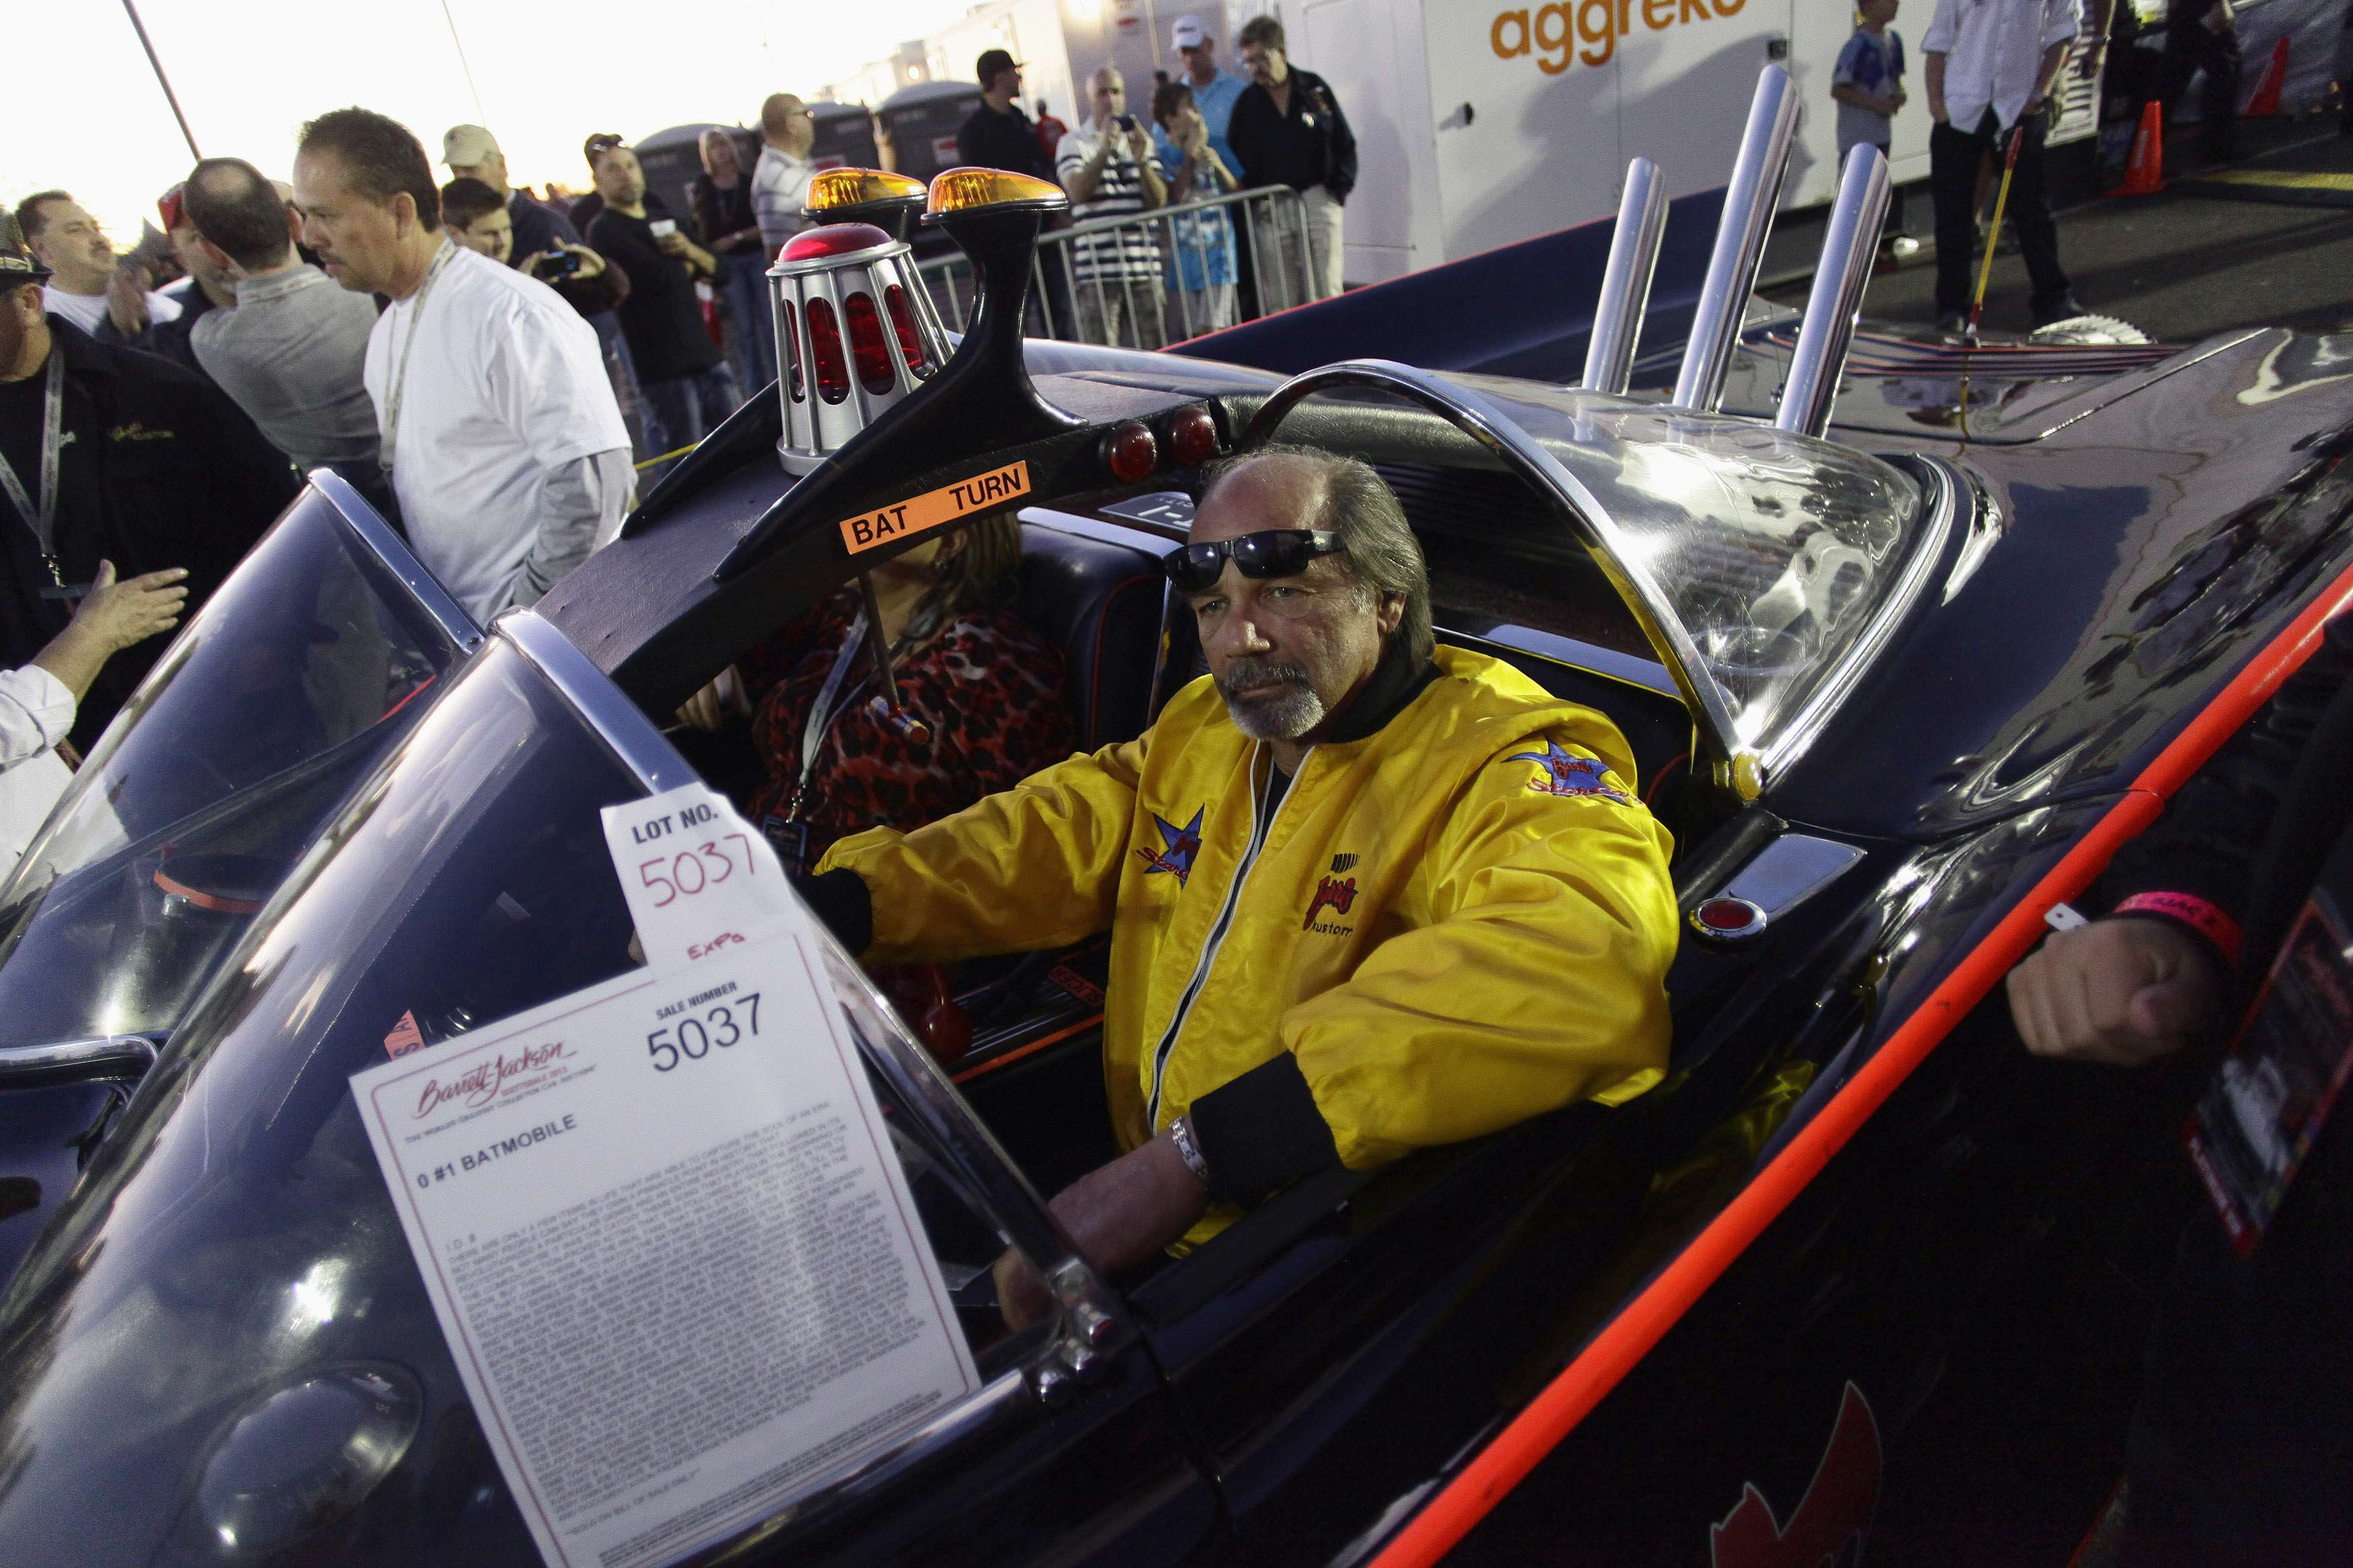 Tony Wood drives the original Batmobile at the Barrett-Jackson collectors car auction in Scottsdale, Arizona January 19, 2013. The vehicle was sold for $4,200,000, according to the auction company. REUTERS/Joshua Lott (UNITED STATES - Tags: ENTERTAINMENT SOCIETY BUSINESS TRANSPORT)